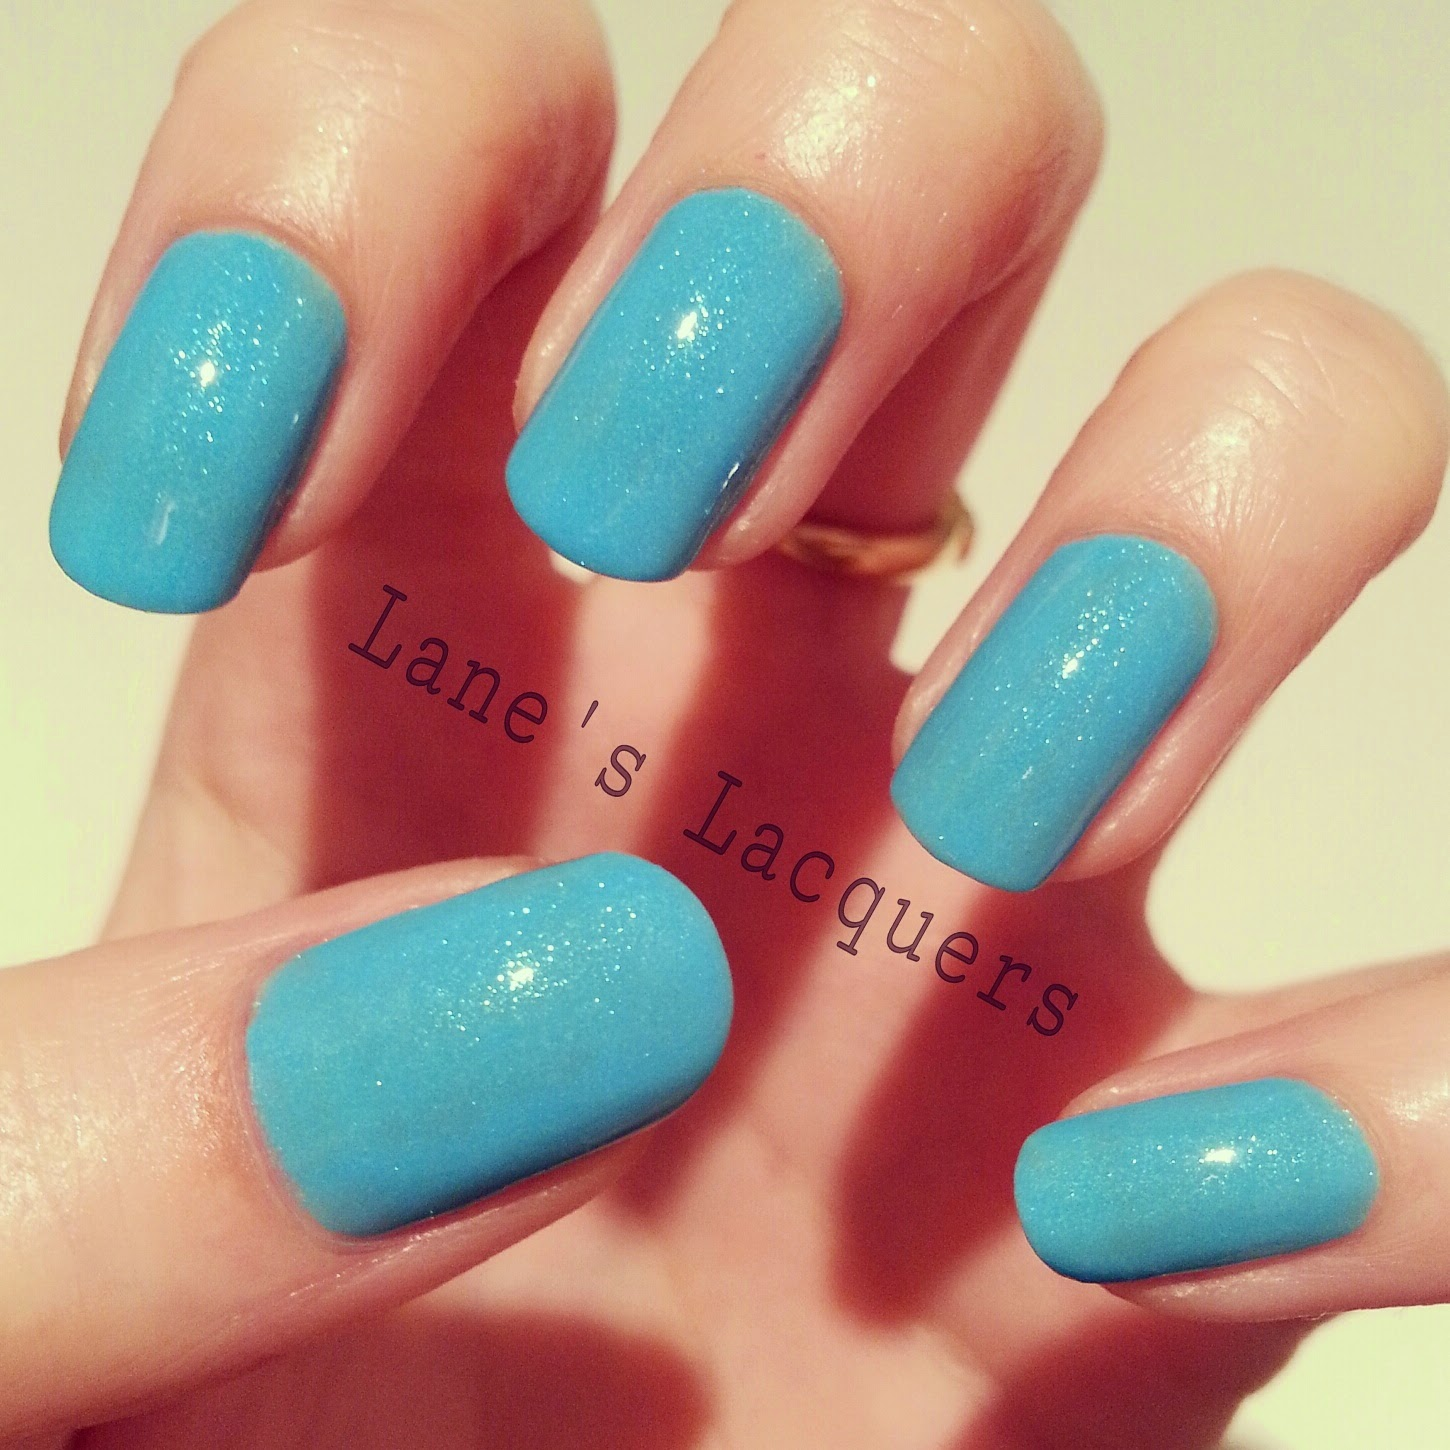 new-models-own-luxe-collection-asschure-blue-swatch-manicure